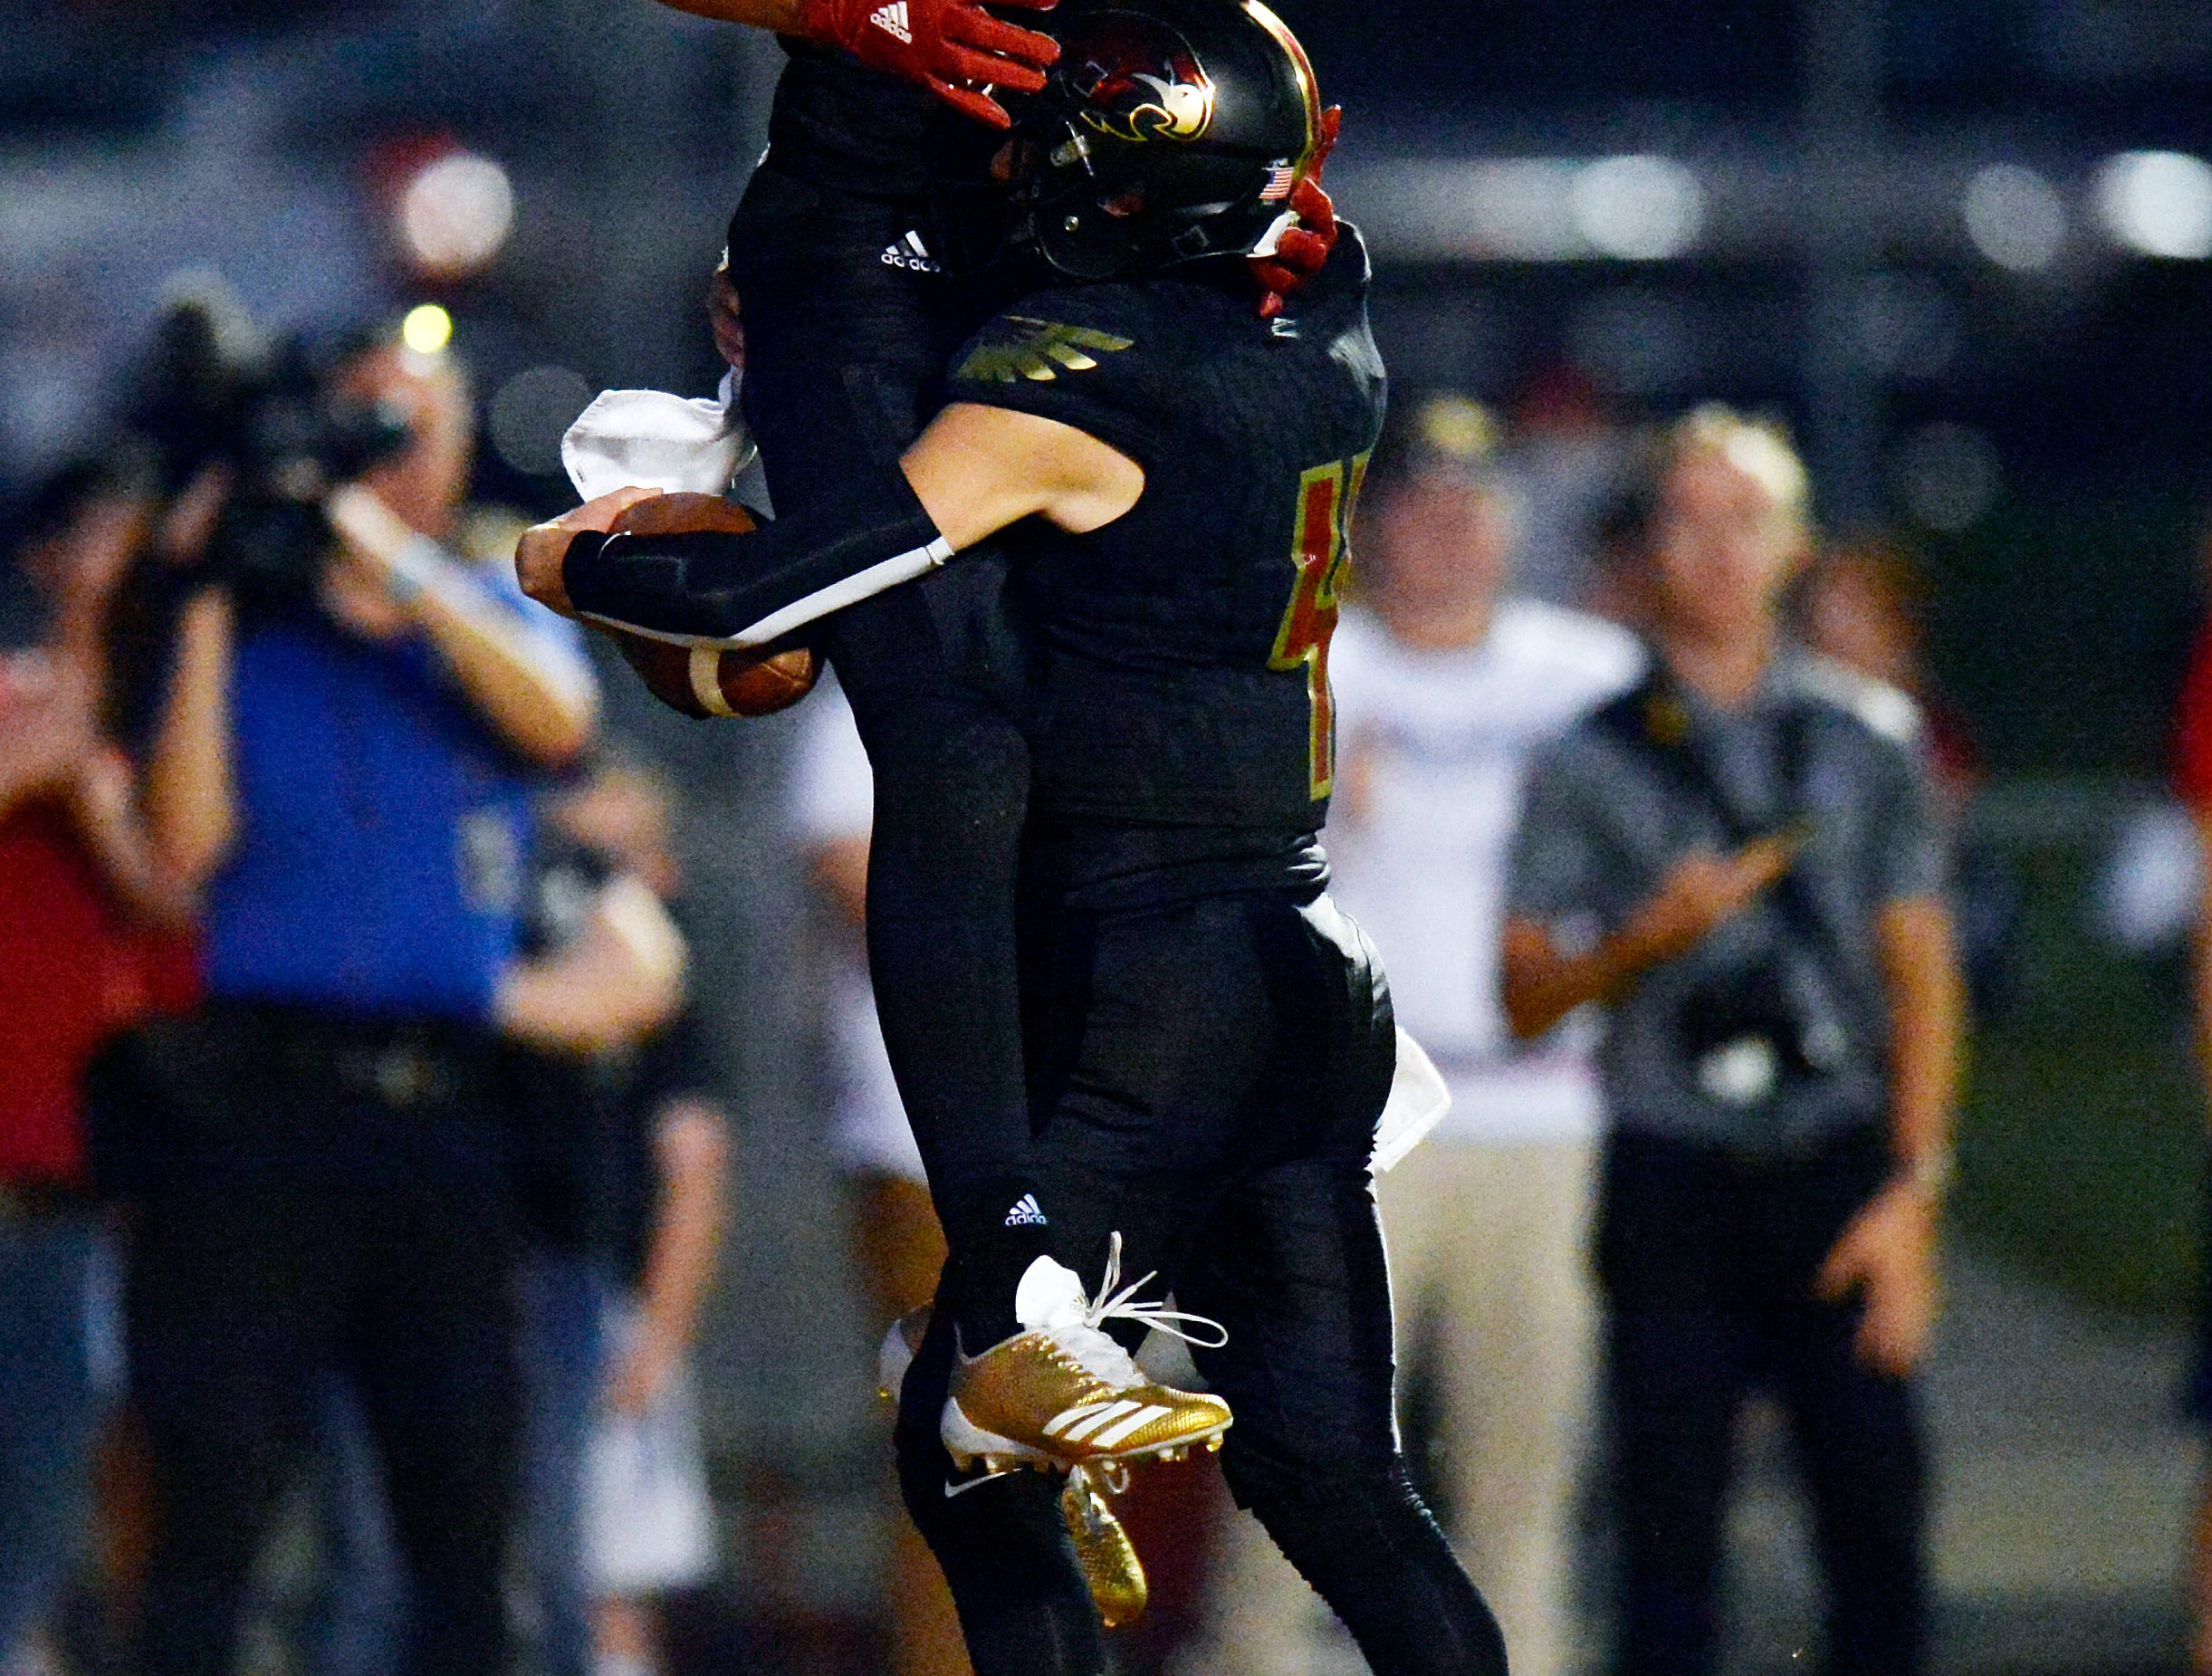 Ravenwood quarterback Brian Garcia (4) celebrates with Ravenwood tight end Jake Briningstool (9) after Garcia caught a pass for a touchdown against Brentwood during the first half of an high school football game Friday, September 14, 2018, in Brentwood, Tenn.